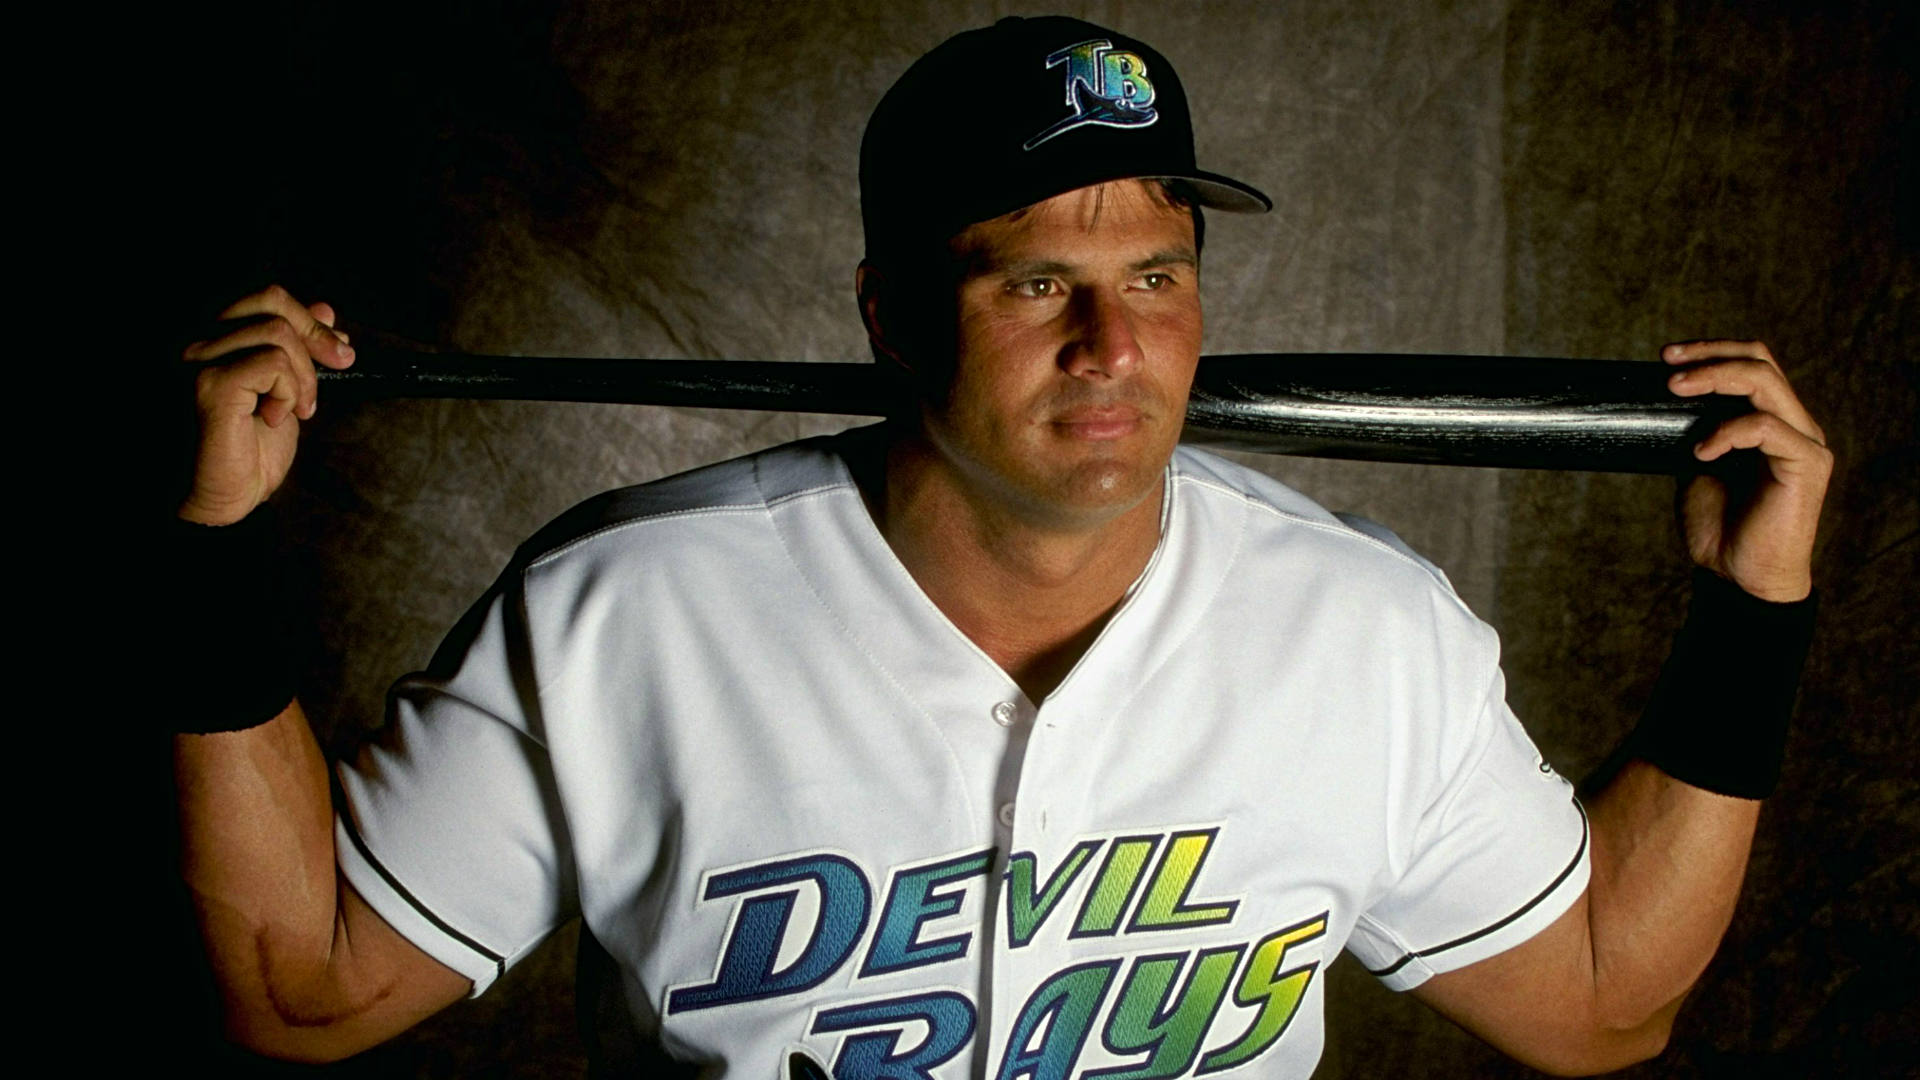 Jose-Canseco-FTR-Getty.jpg